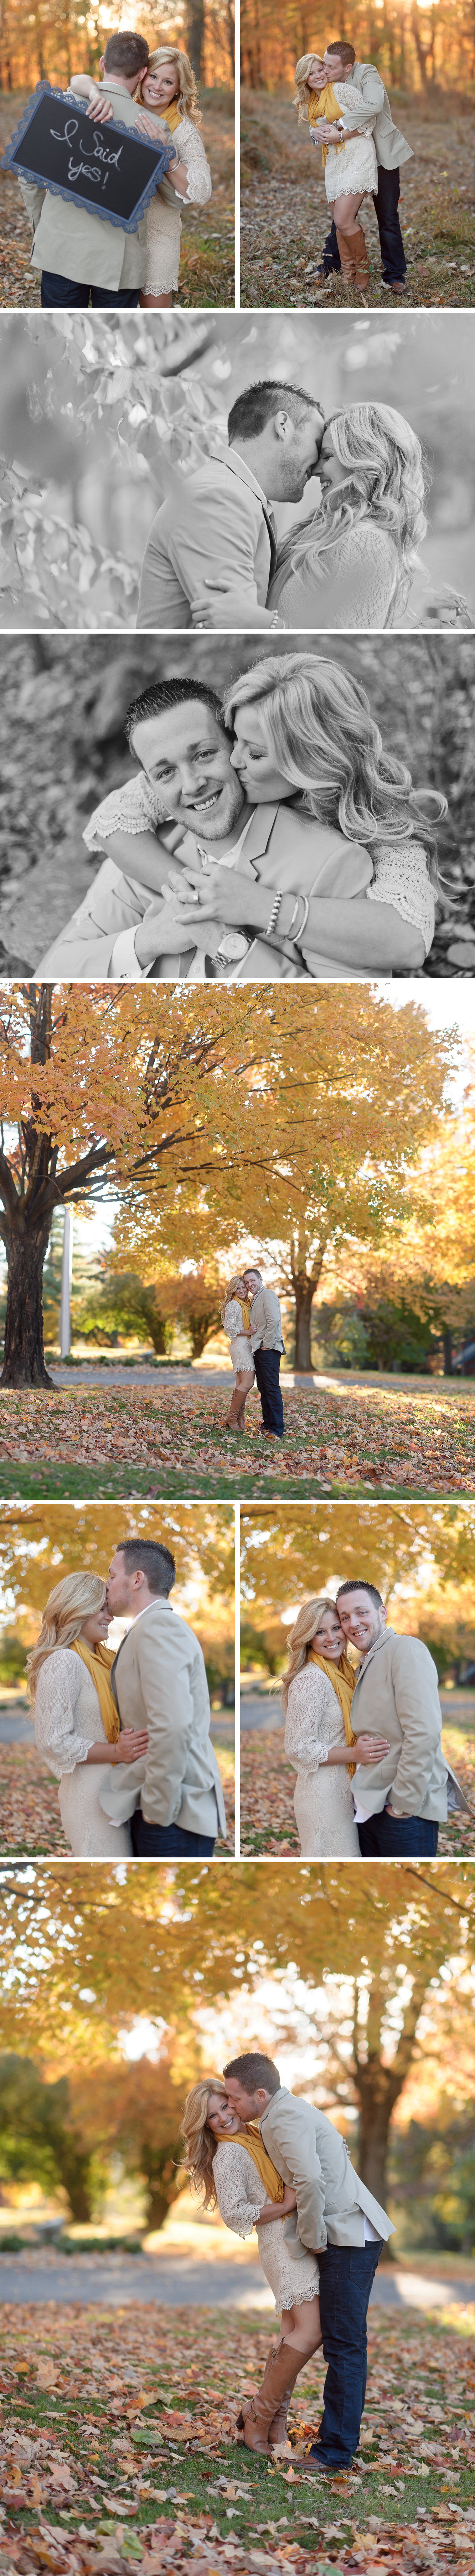 Lancaster, PA Engagement Photography by Jeremy Bischoff Photography